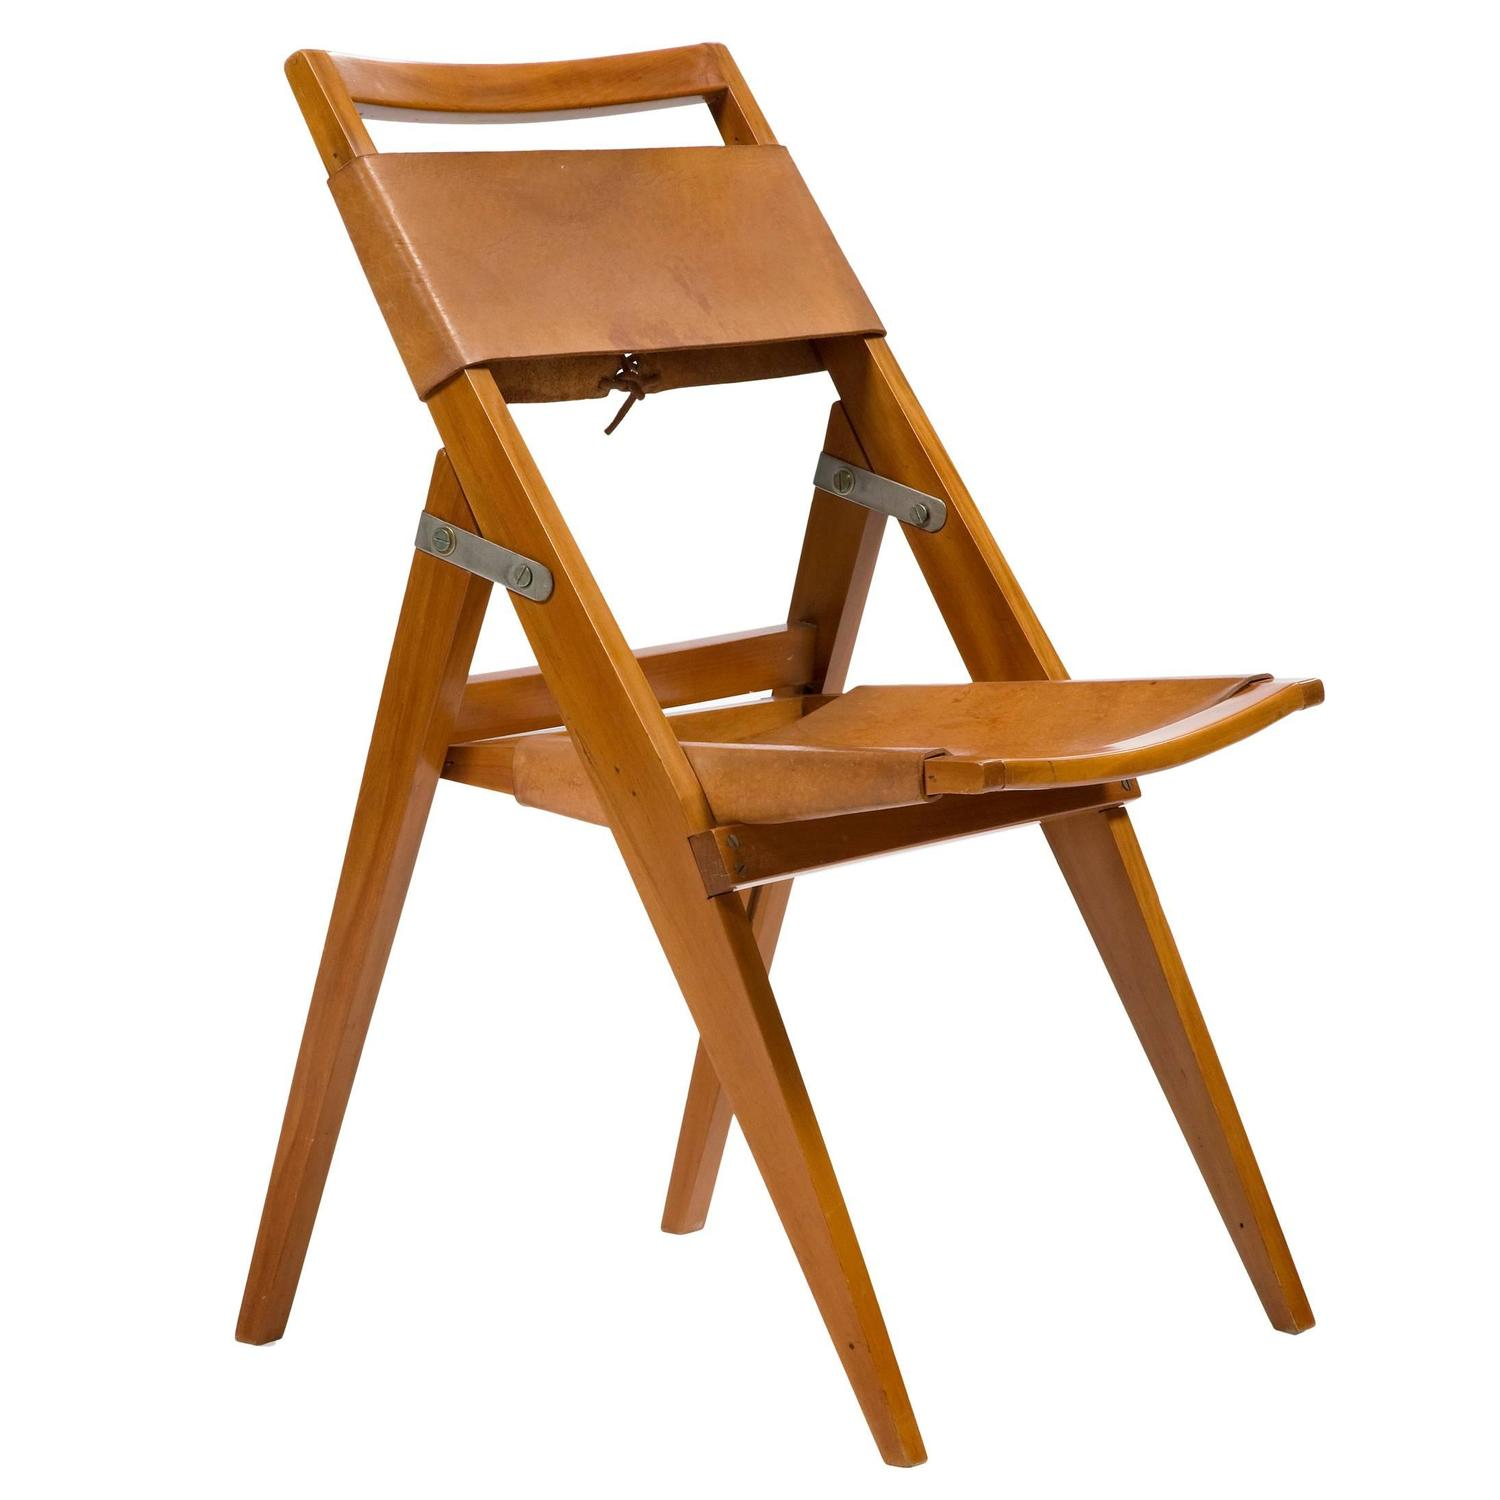 Leather Folding Chairs 62 For Sale on 1stdibs